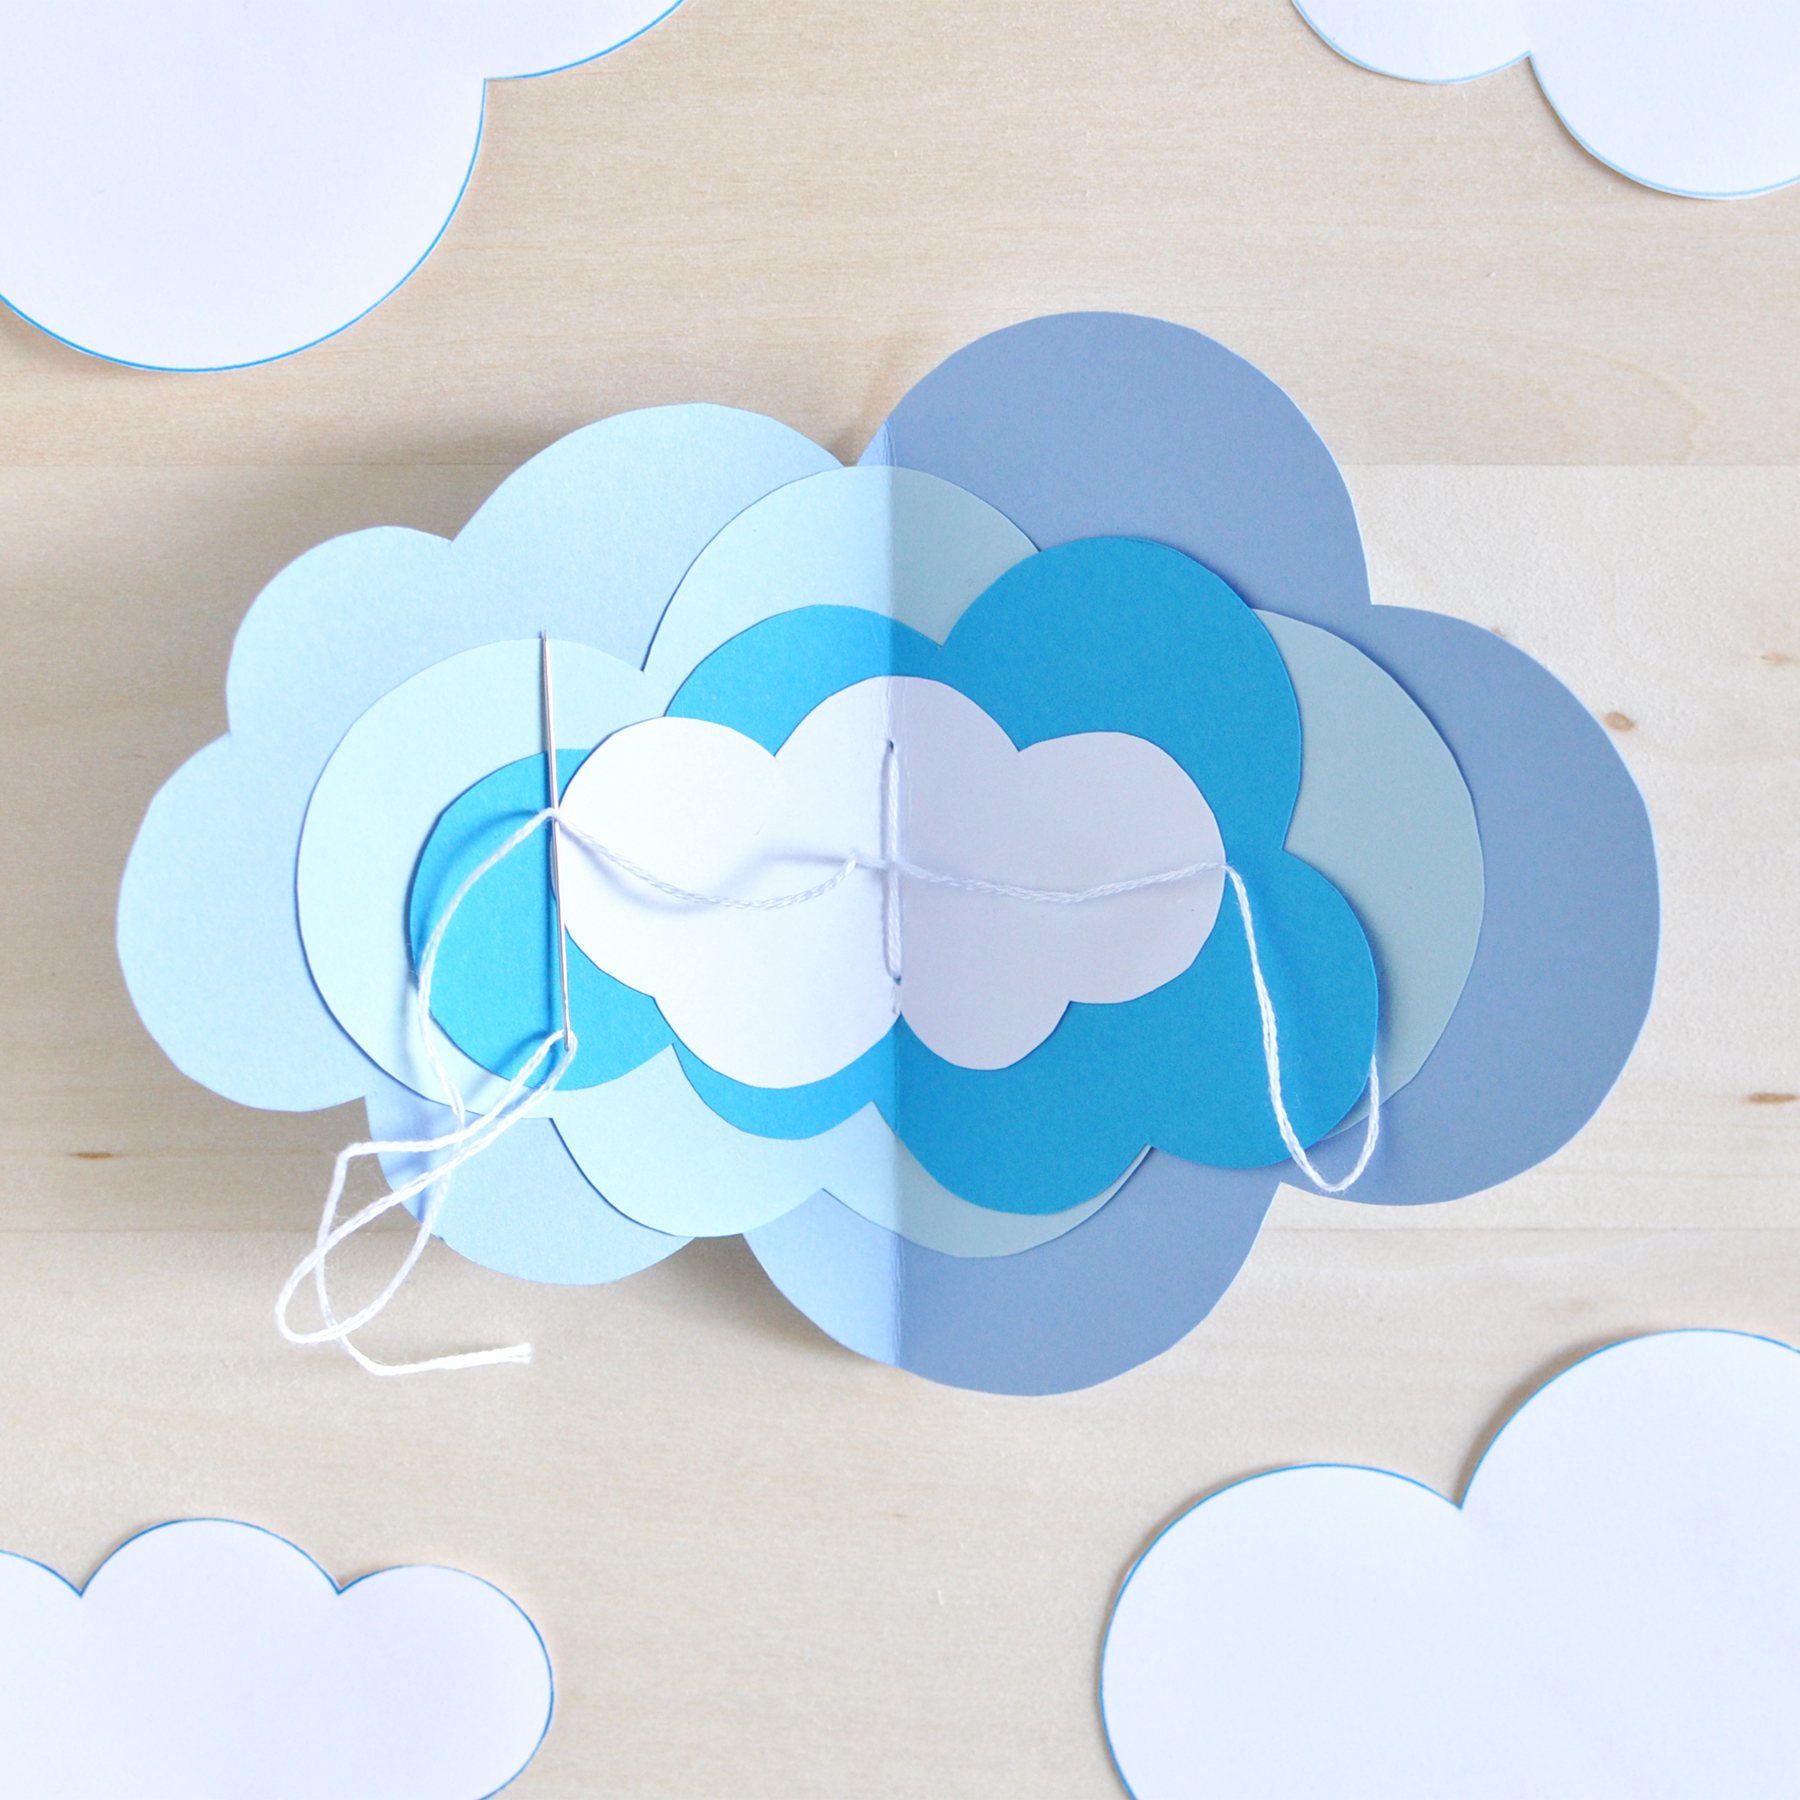 Make-Your-Own-Mini-Cloud-Journal---Image10.jpg